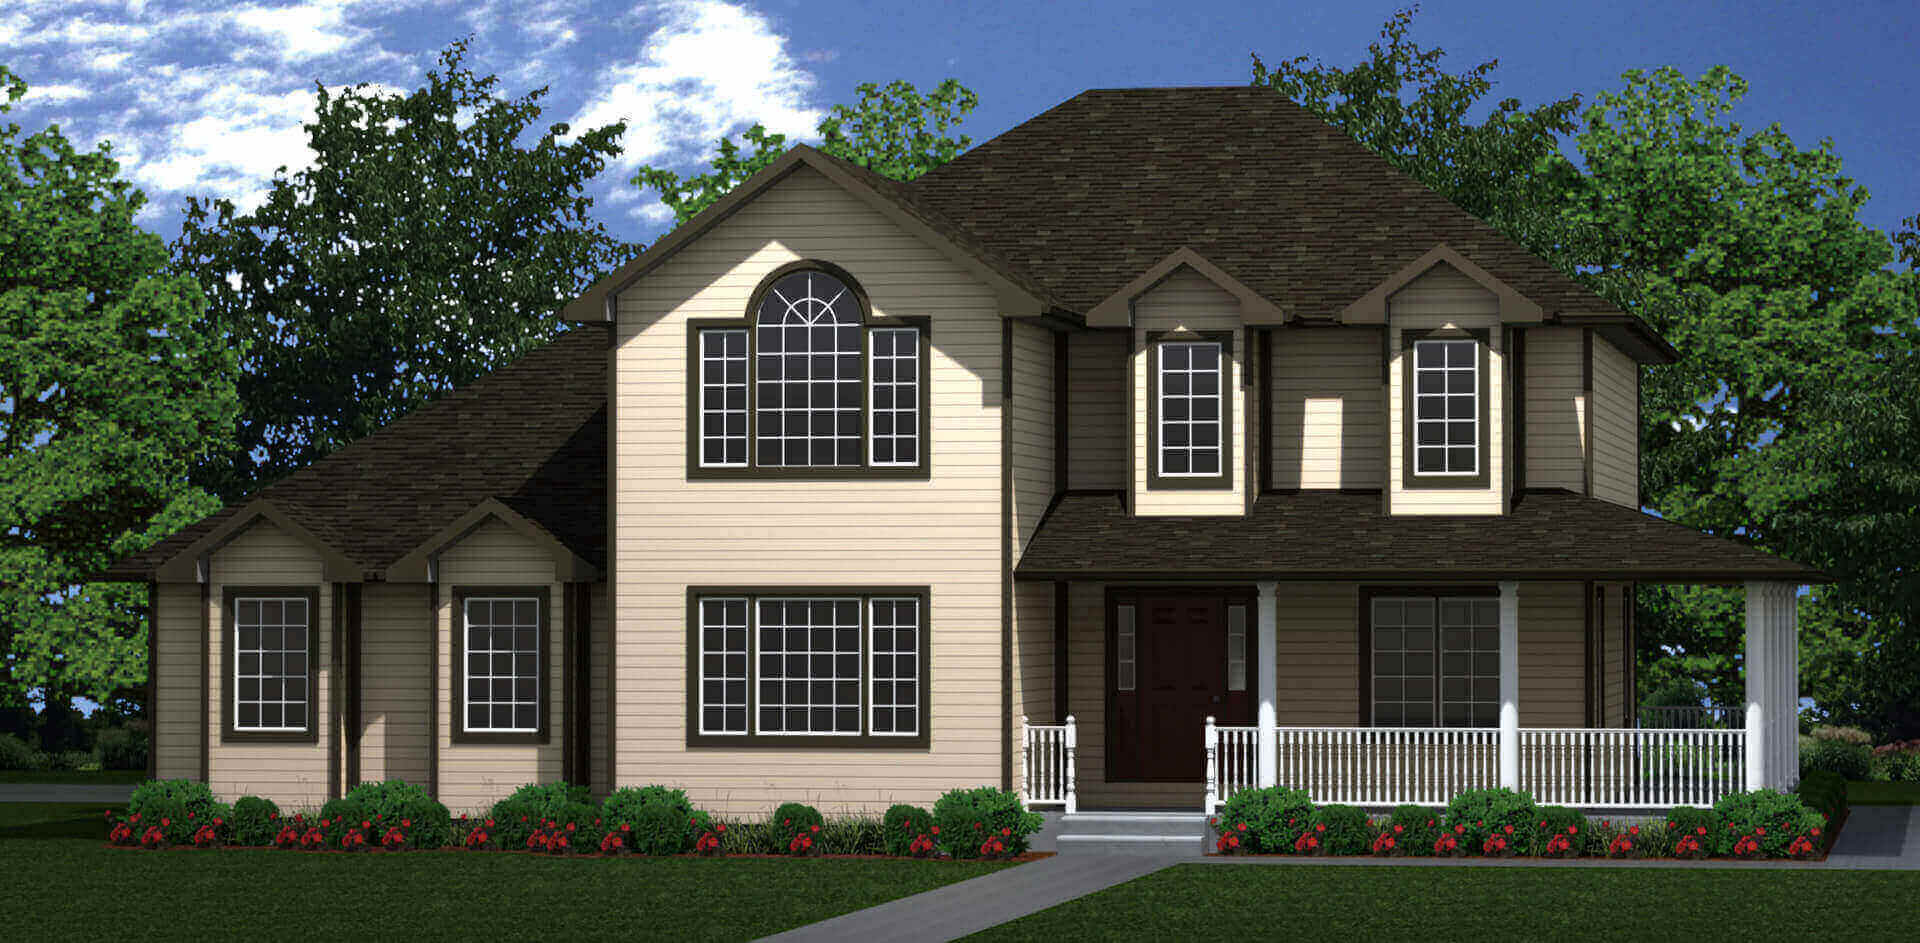 2927 sq.ft. timber mart house 4 bed 4 bath exterior render